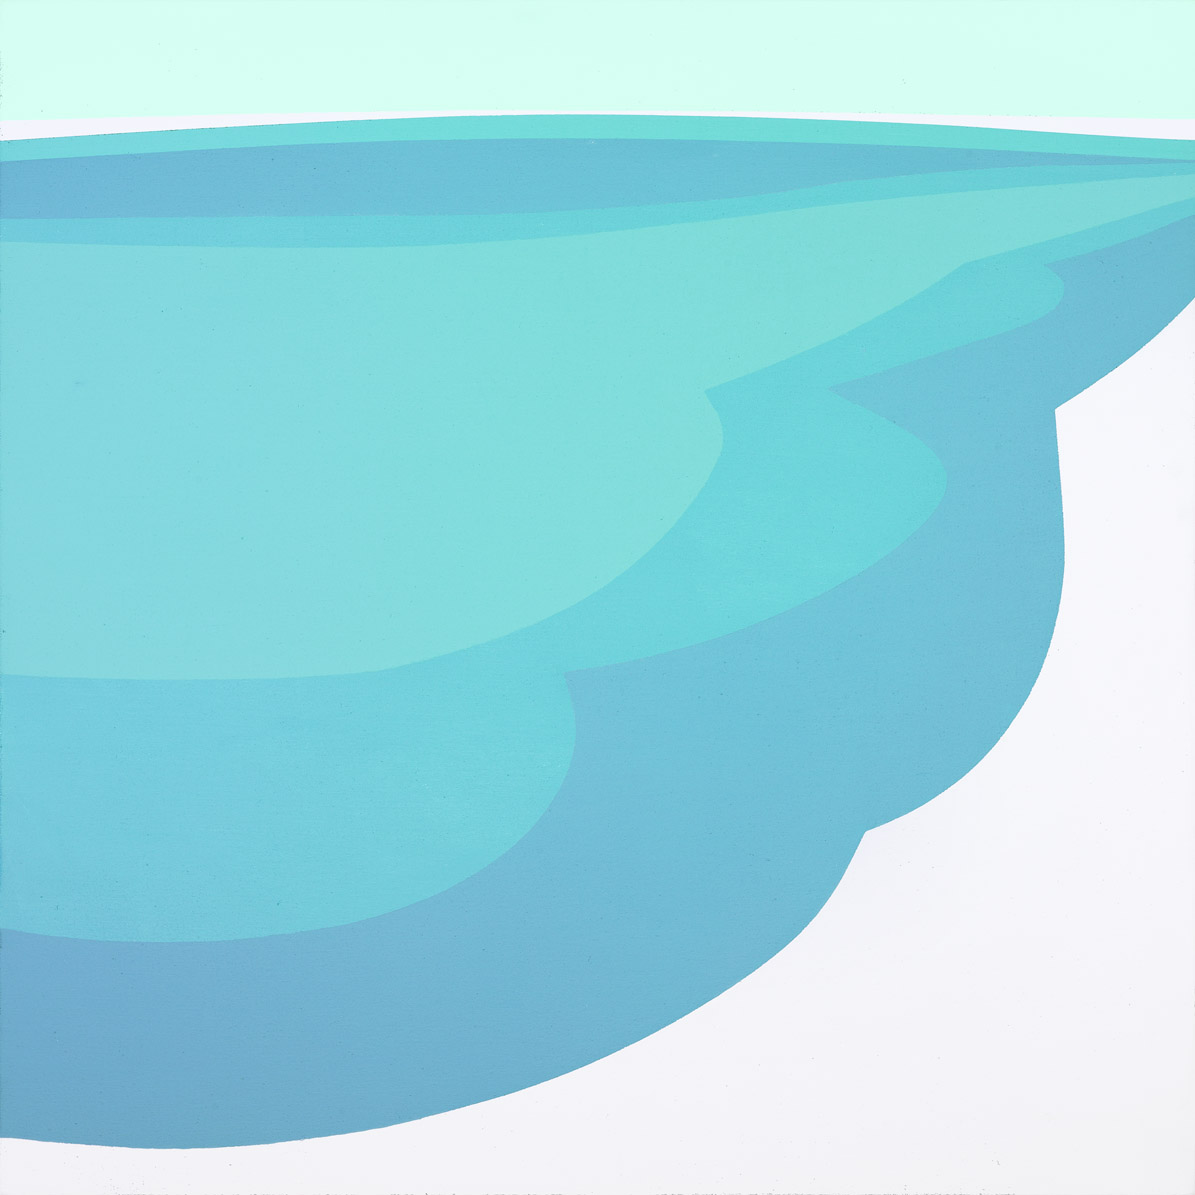 Sea , 1970 acrylic on canvas 30 x 30 inches; 76.2 x 76.2 centimeters